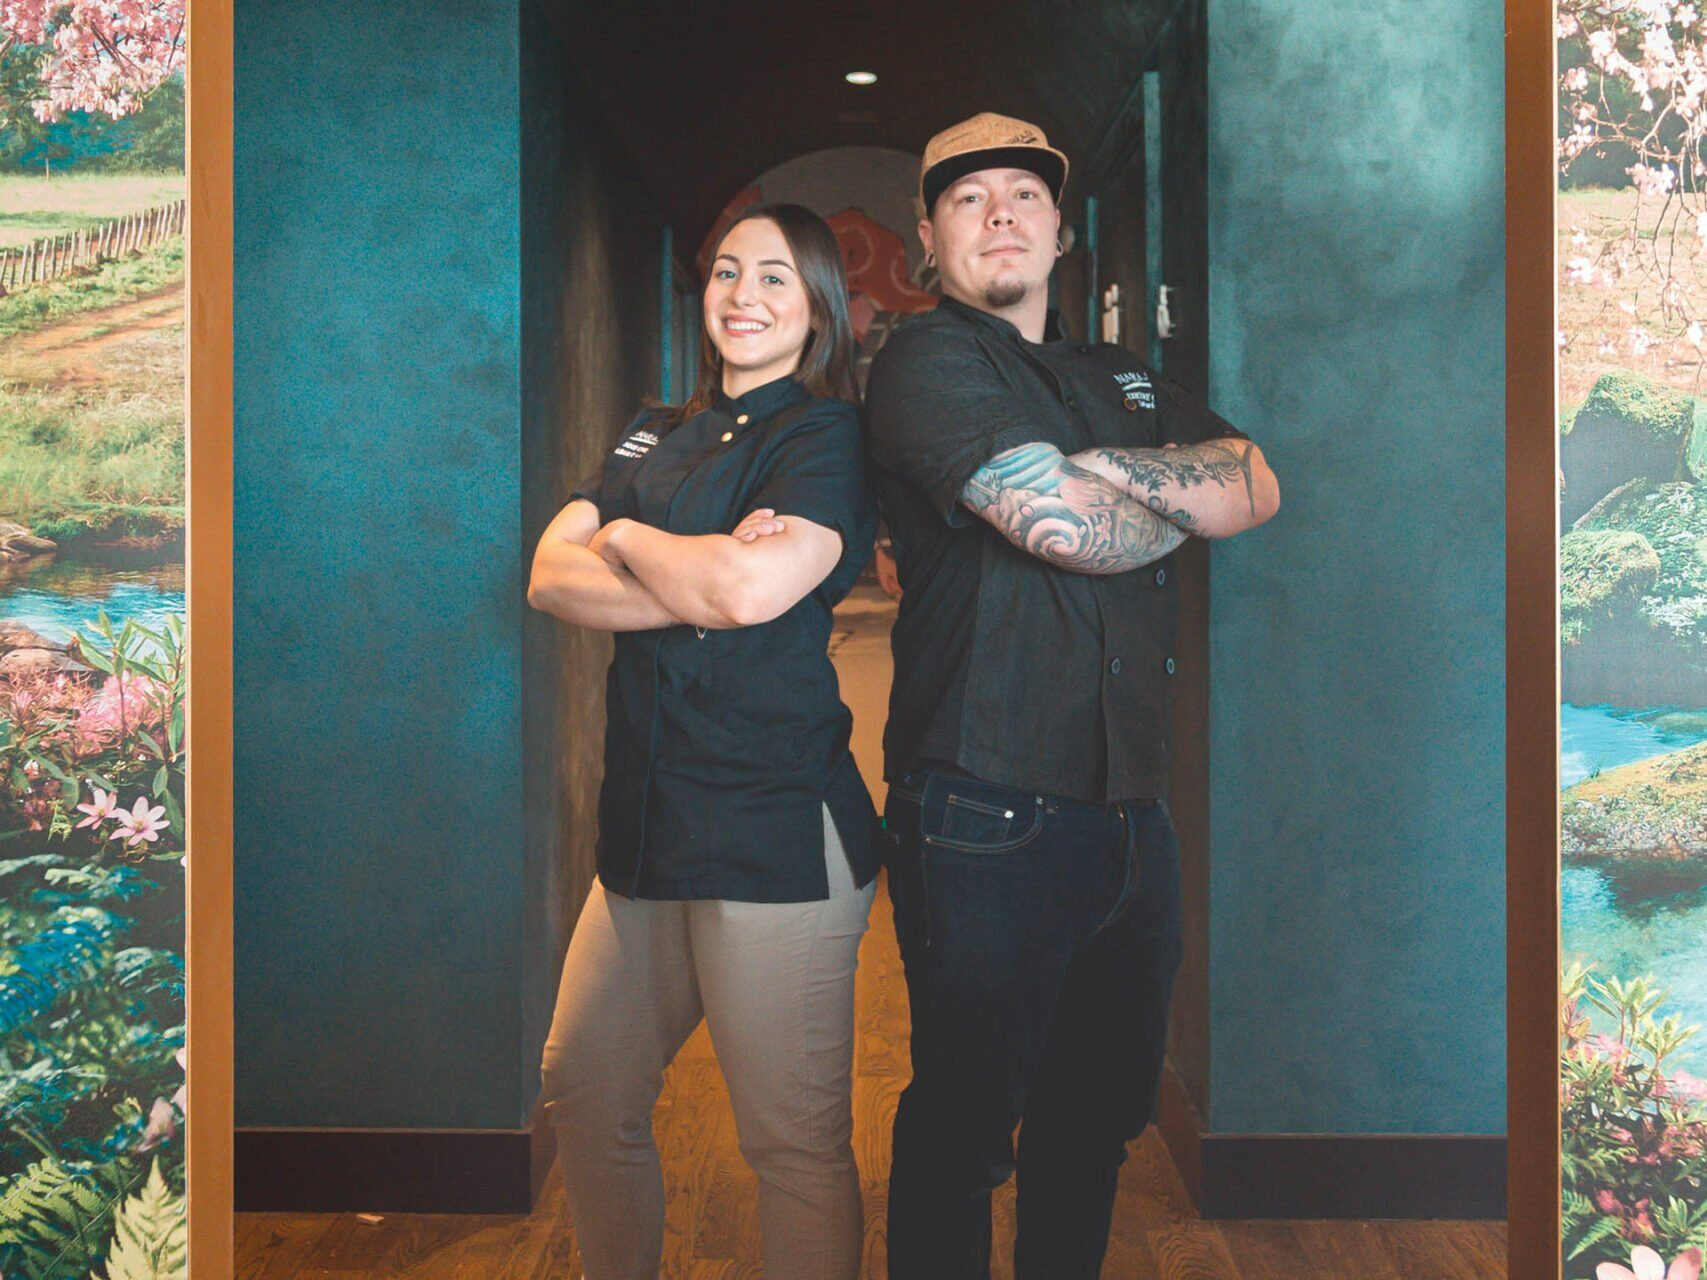 Sous chef Albani Caolo and executive chef Lucas Irwin